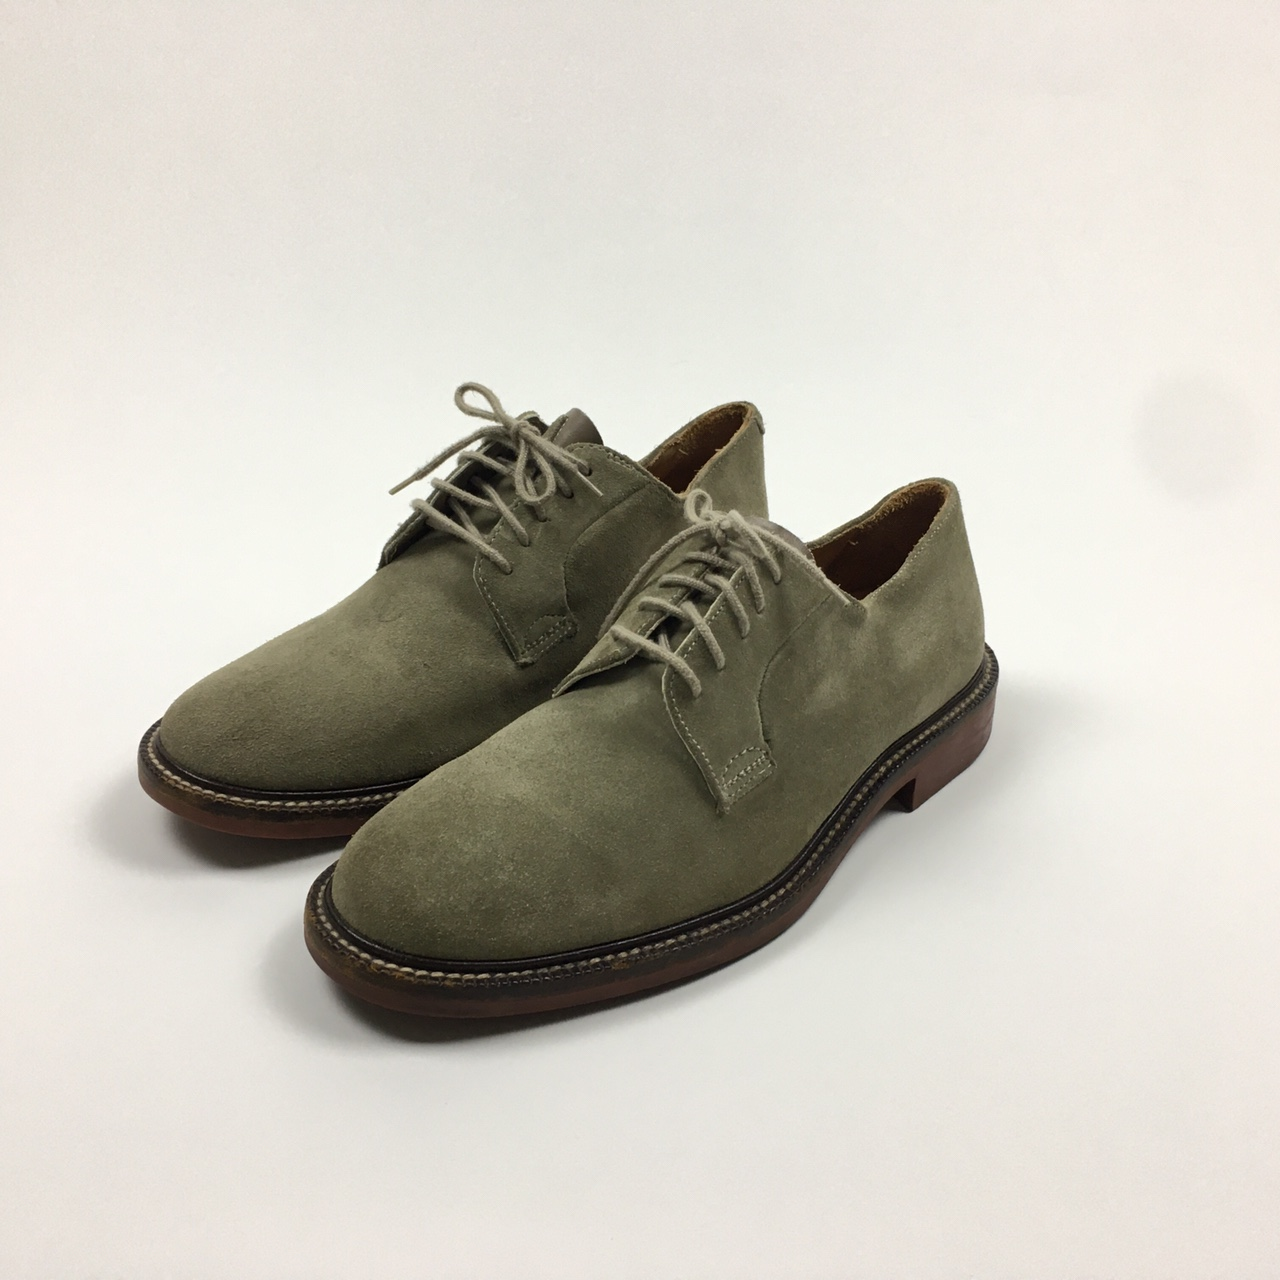 """Product Image 1 - Jcrew ludlow suede derby """"sand"""""""